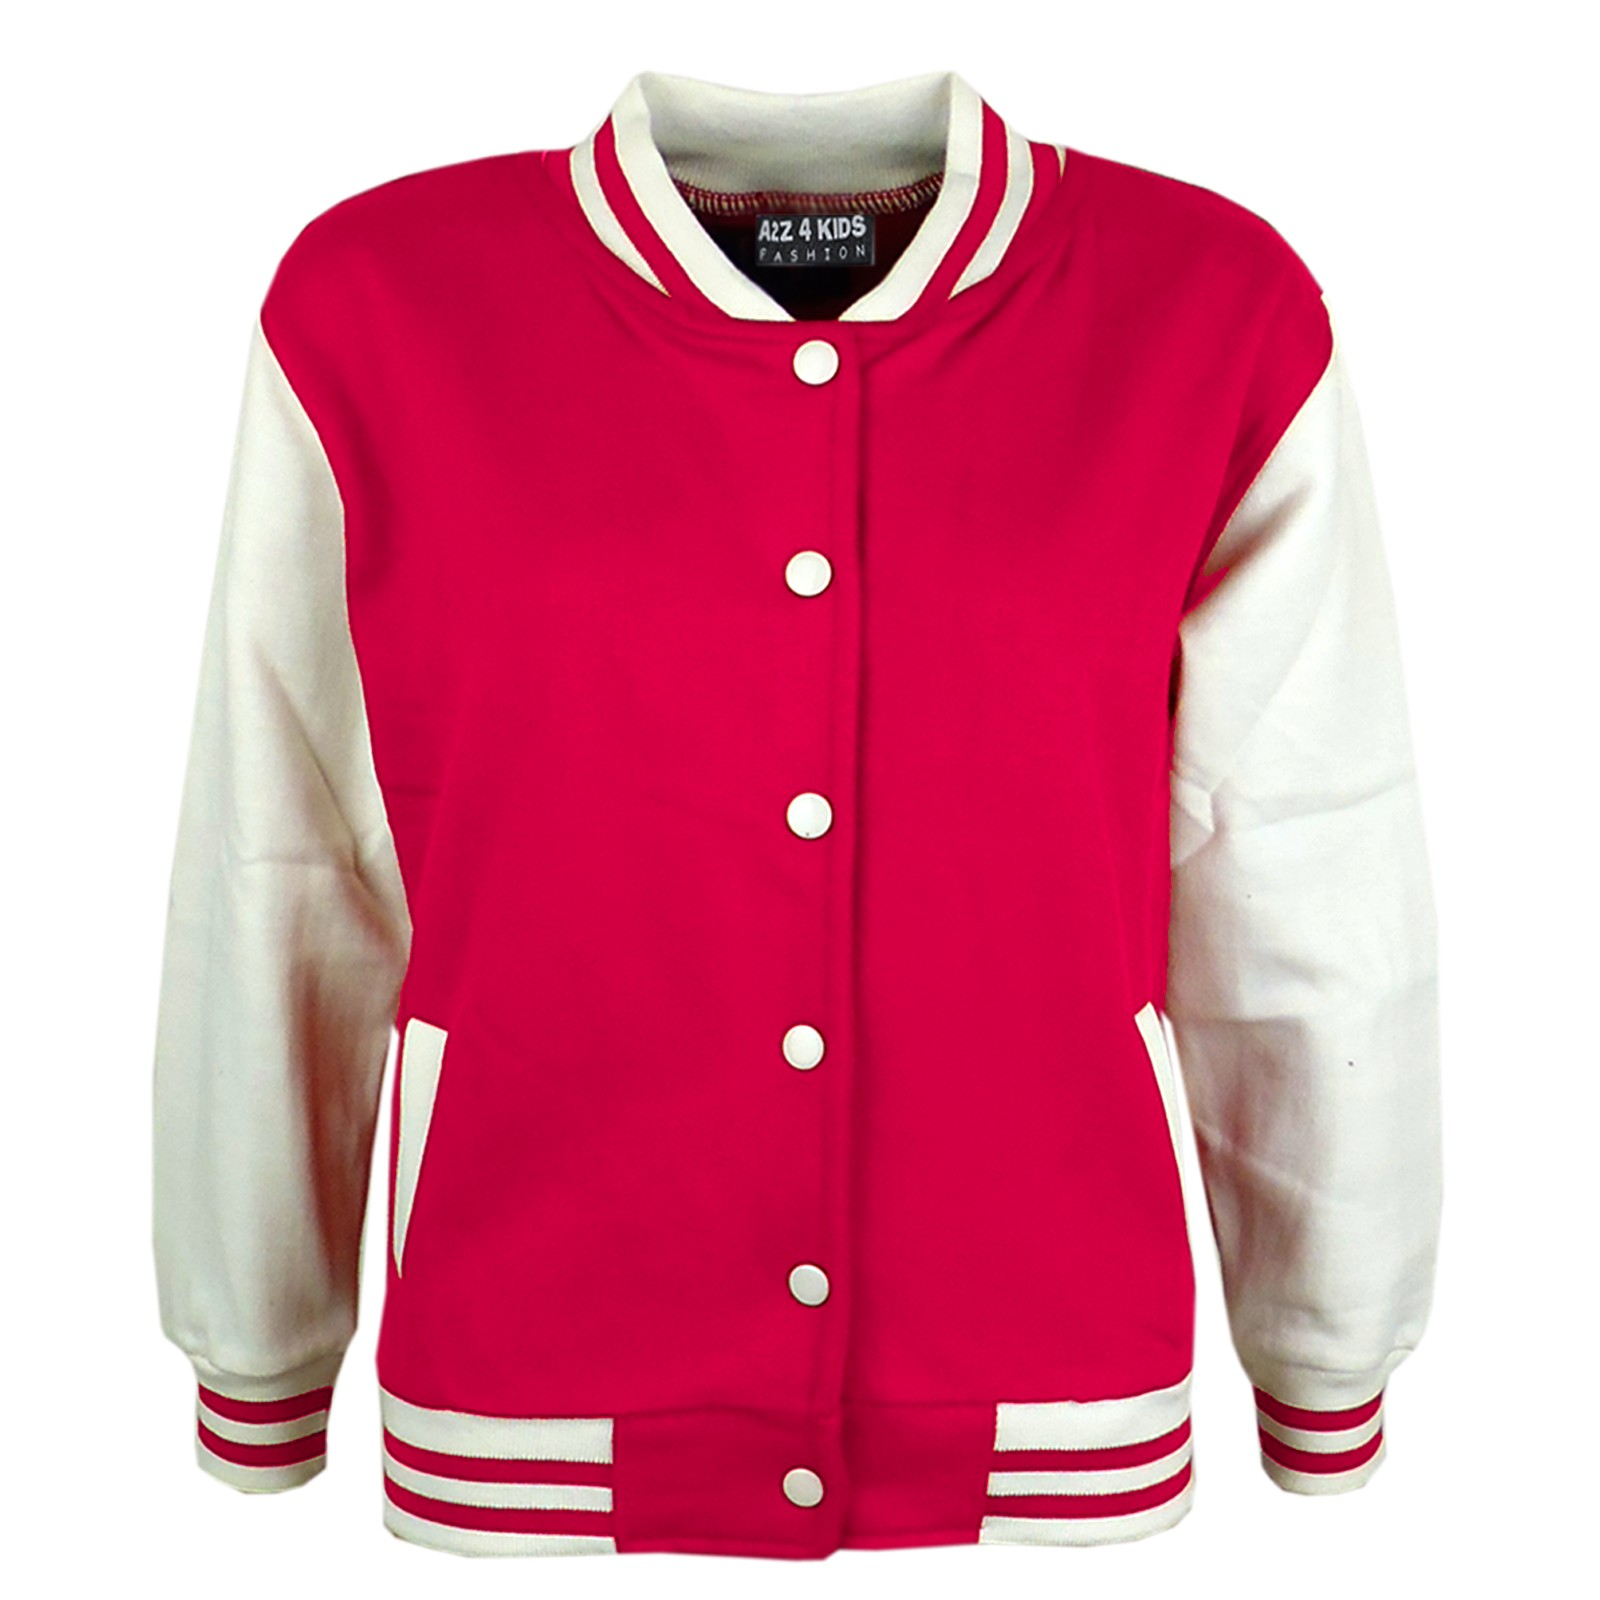 KIDS-GIRLS-BOYS-BASEBALL-JACKET-VARSITY-STYLE-PLAIN-SCHOOL-JACKETS-TOP-5-13-YEAR